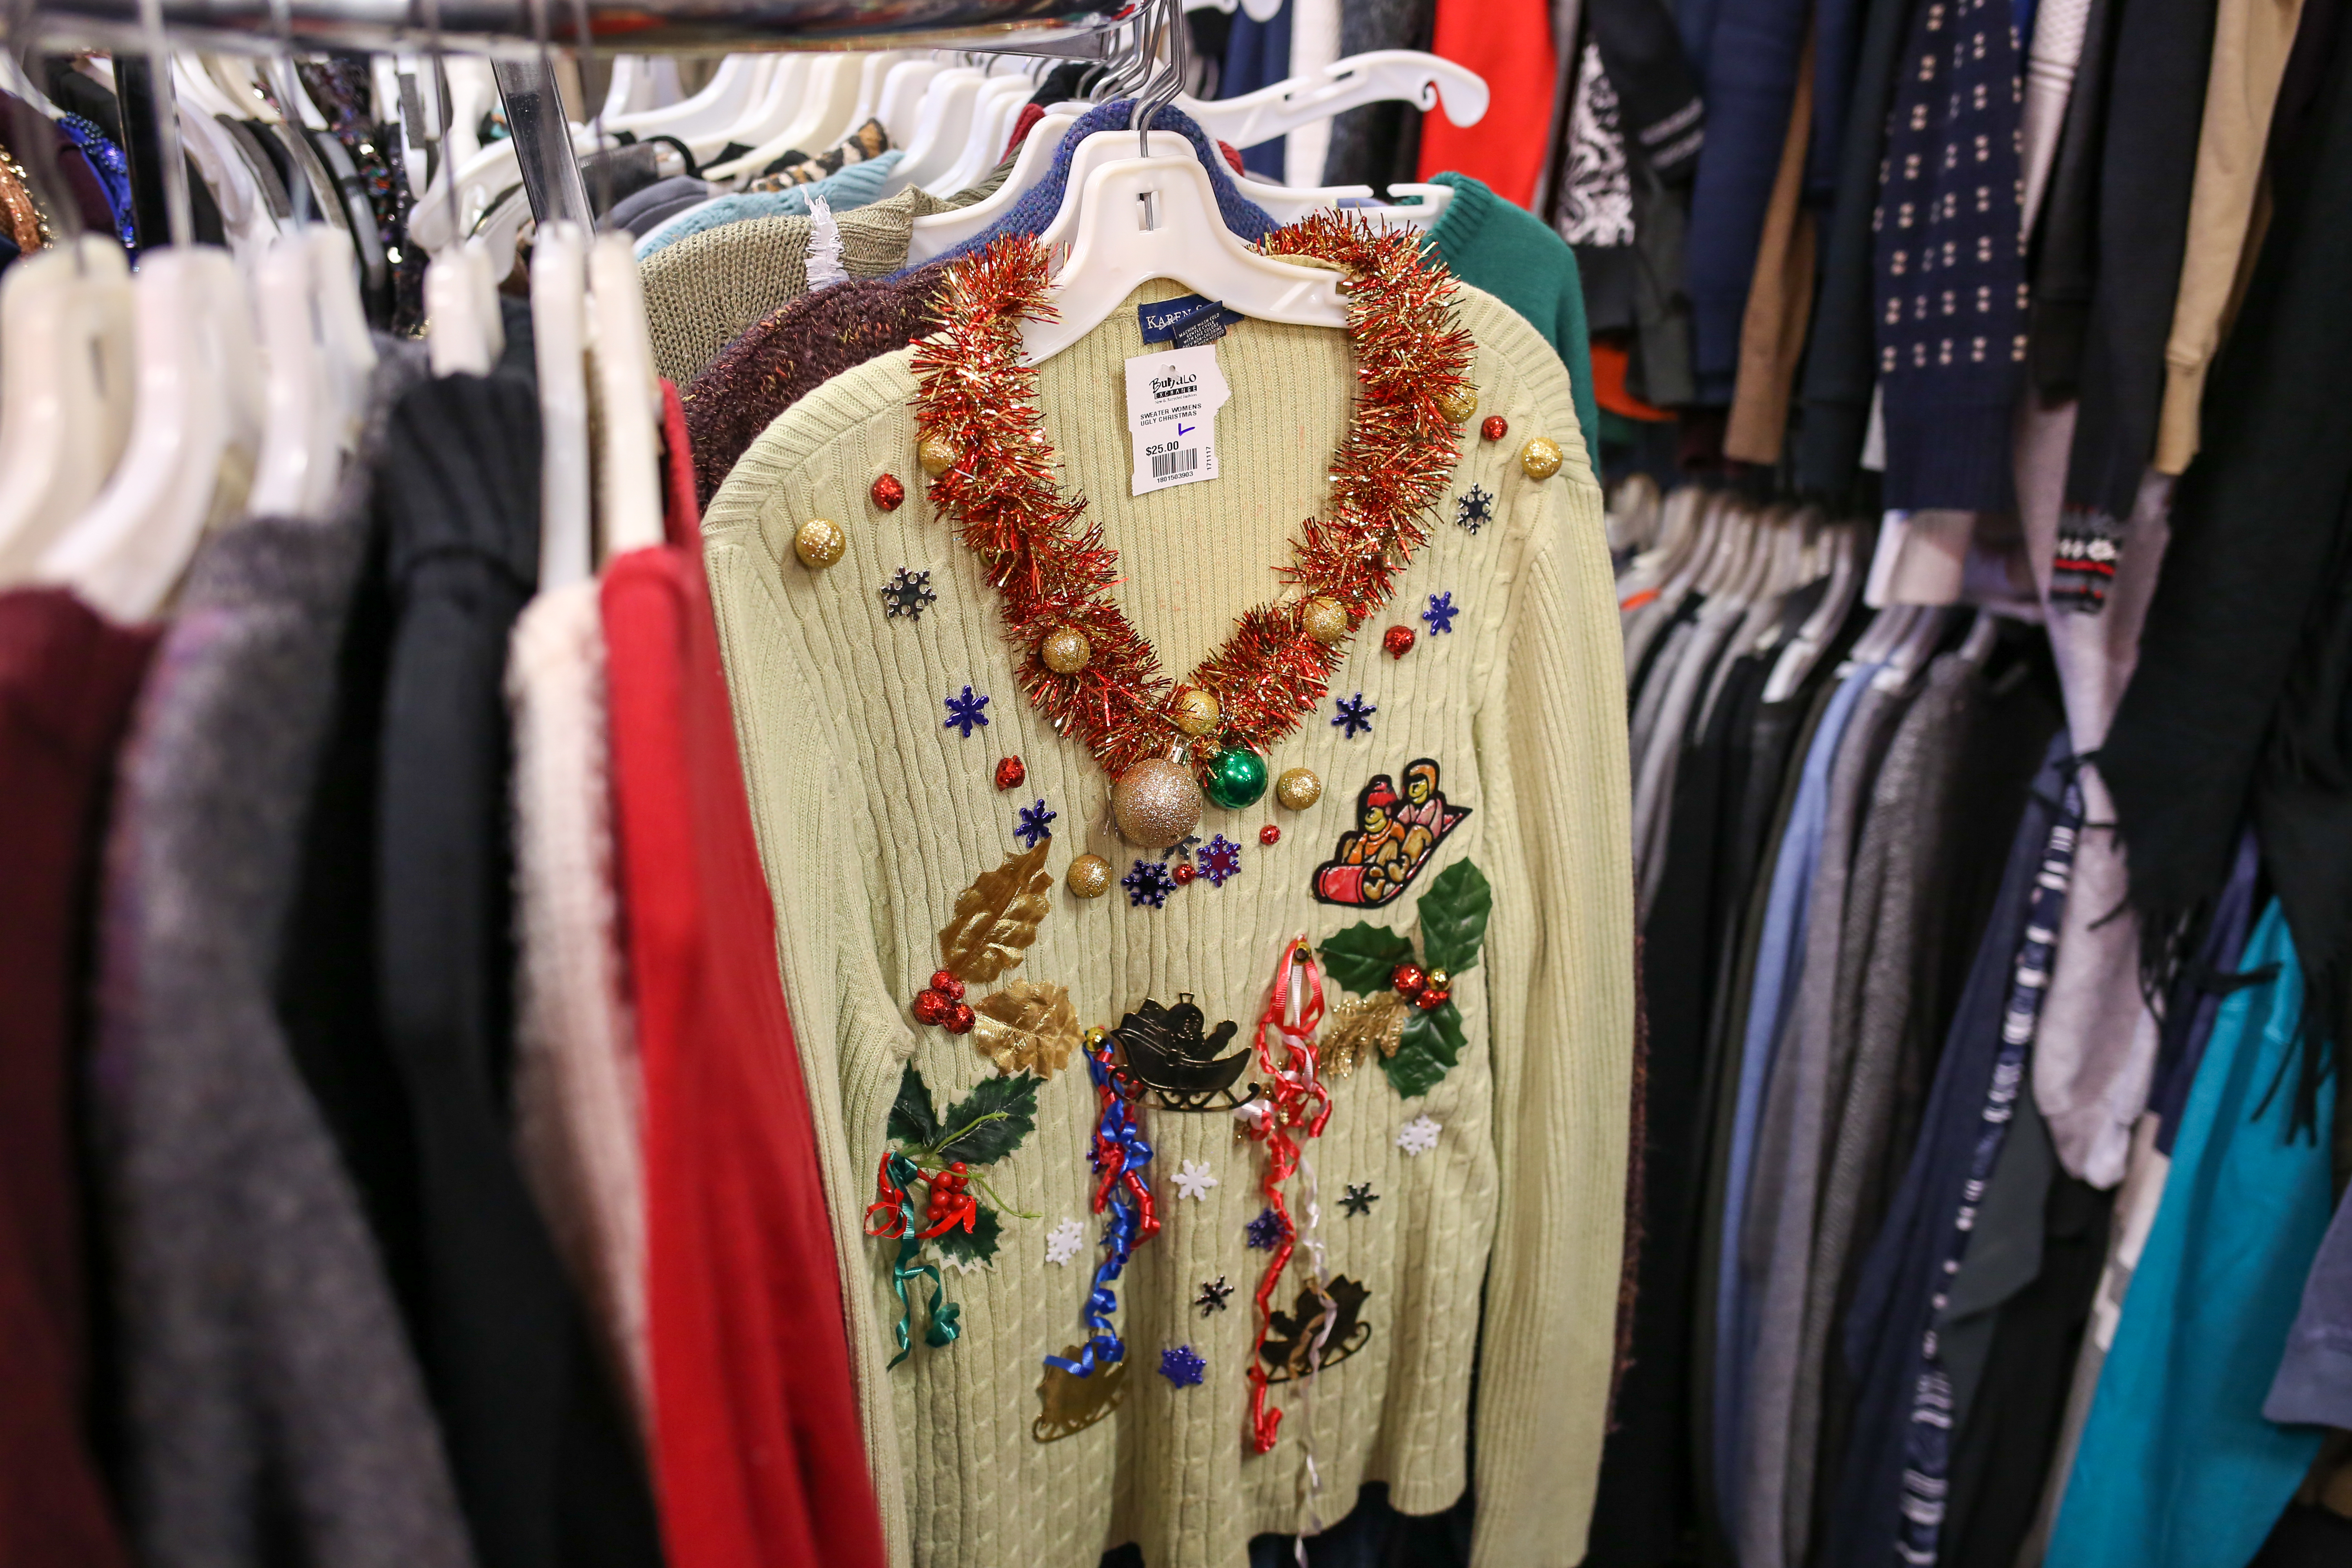 Buffalo Exchange,{ }1318 14th St NW - $25 (Amanda Andrade-Rhoades/DC Refined)